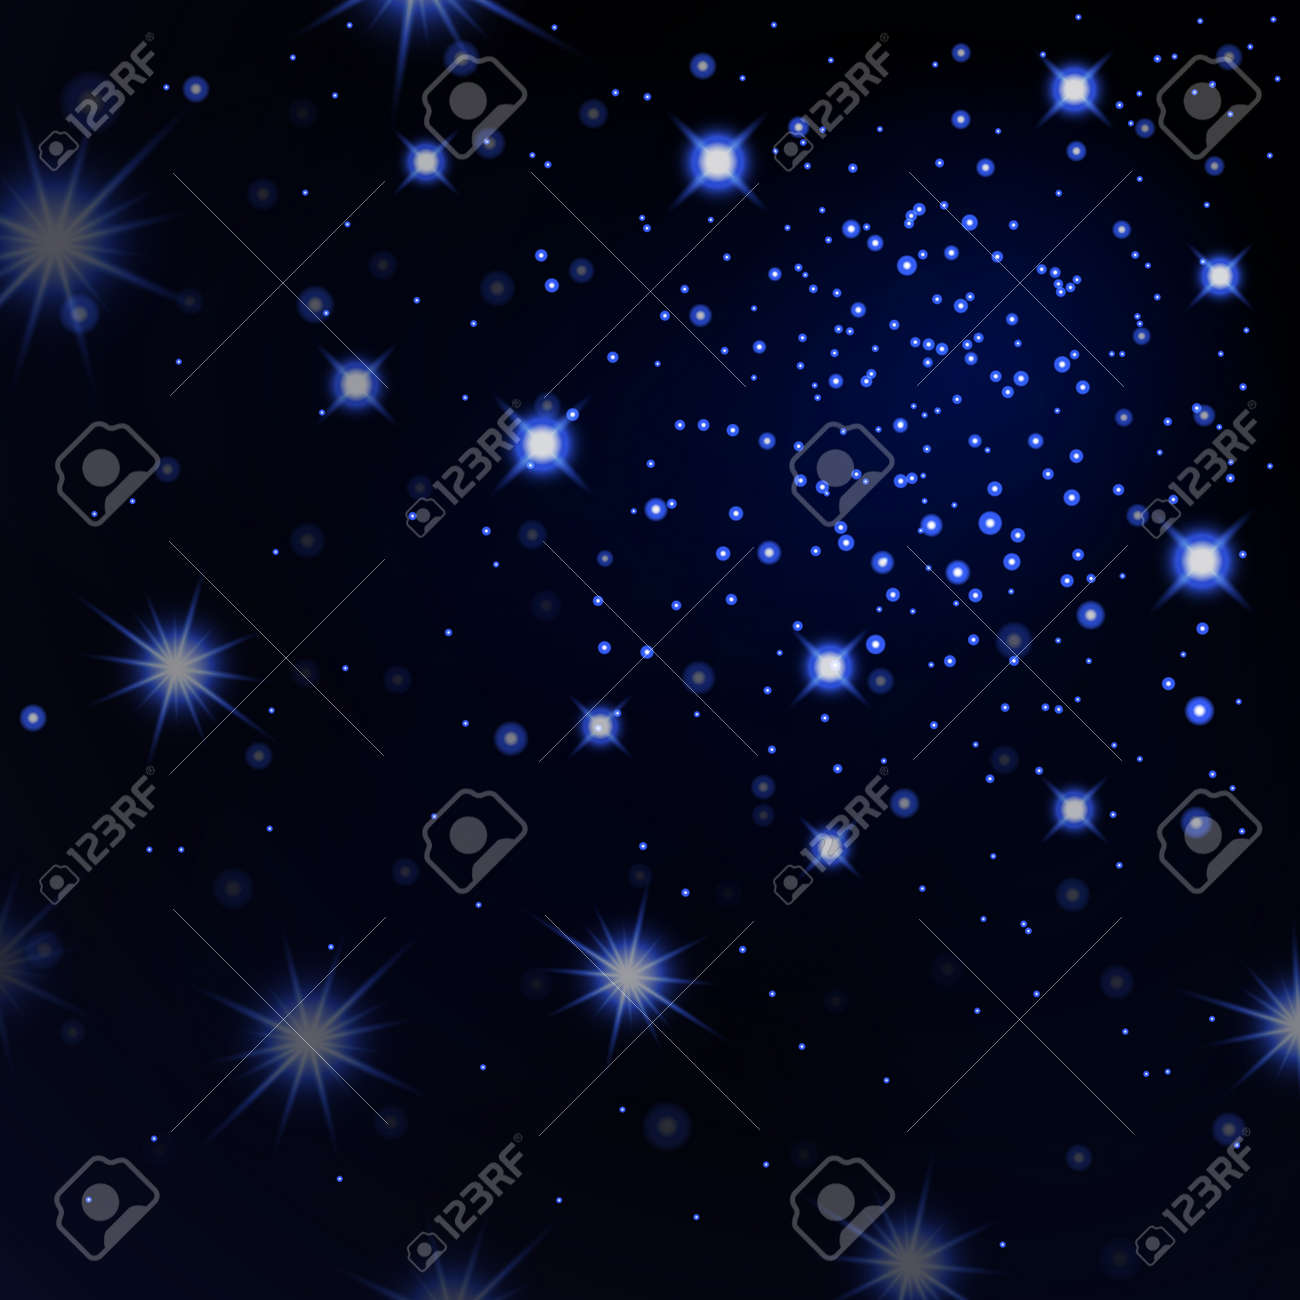 Blue Stars Black Night Sky Background Abstract Bokeh Glowing Royalty Free Cliparts Vectors And Stock Illustration Image 84670385